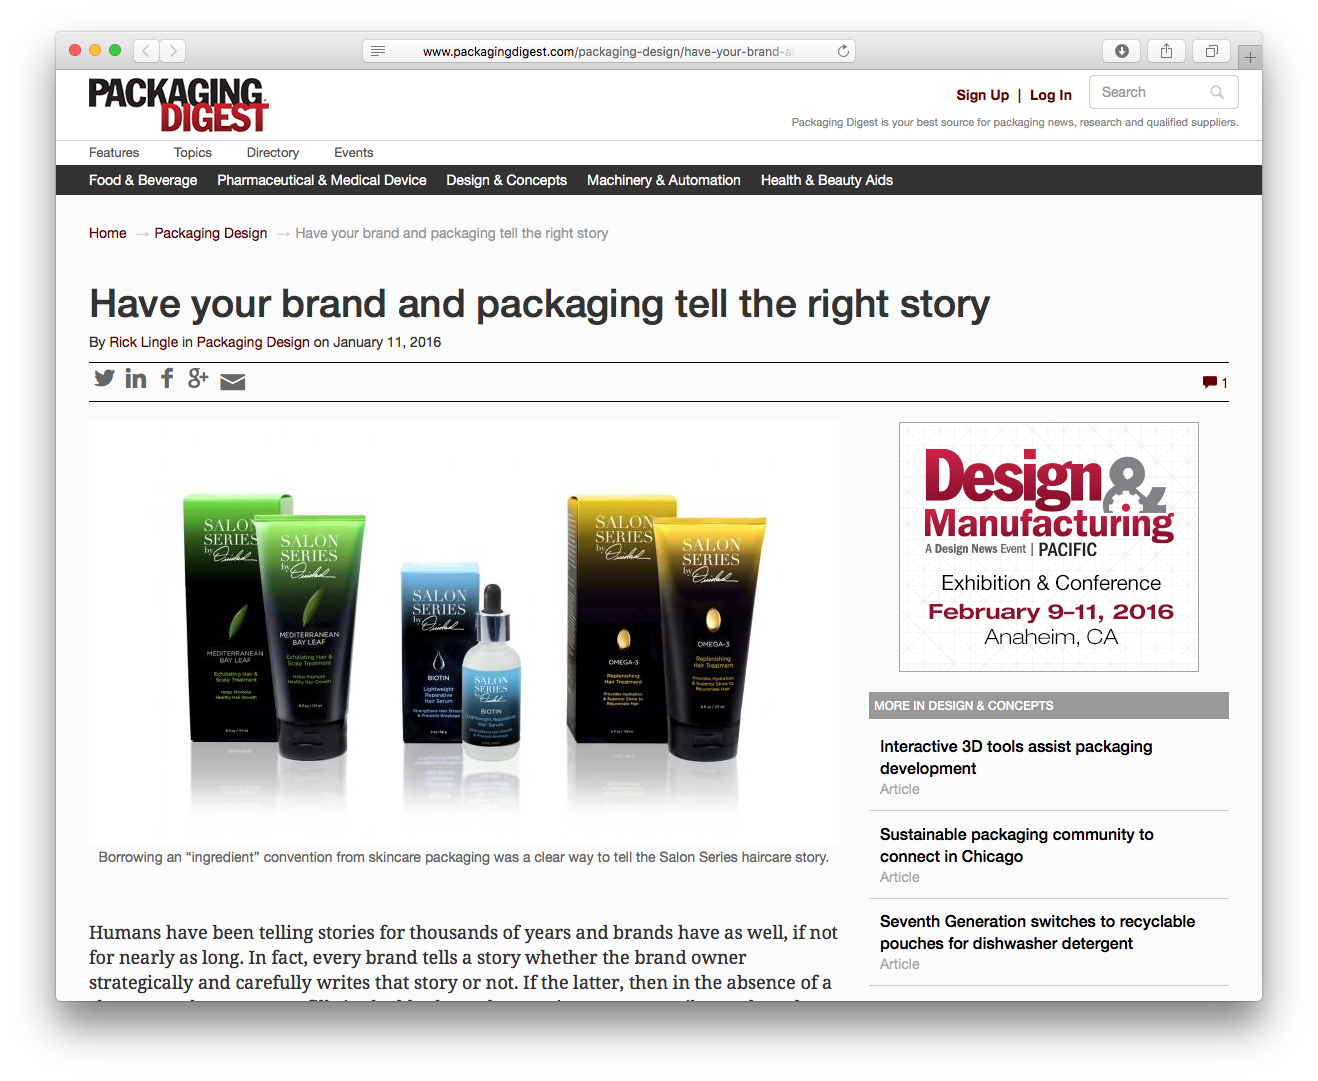 Sheri Koetting Interviewed for Packaging Digest